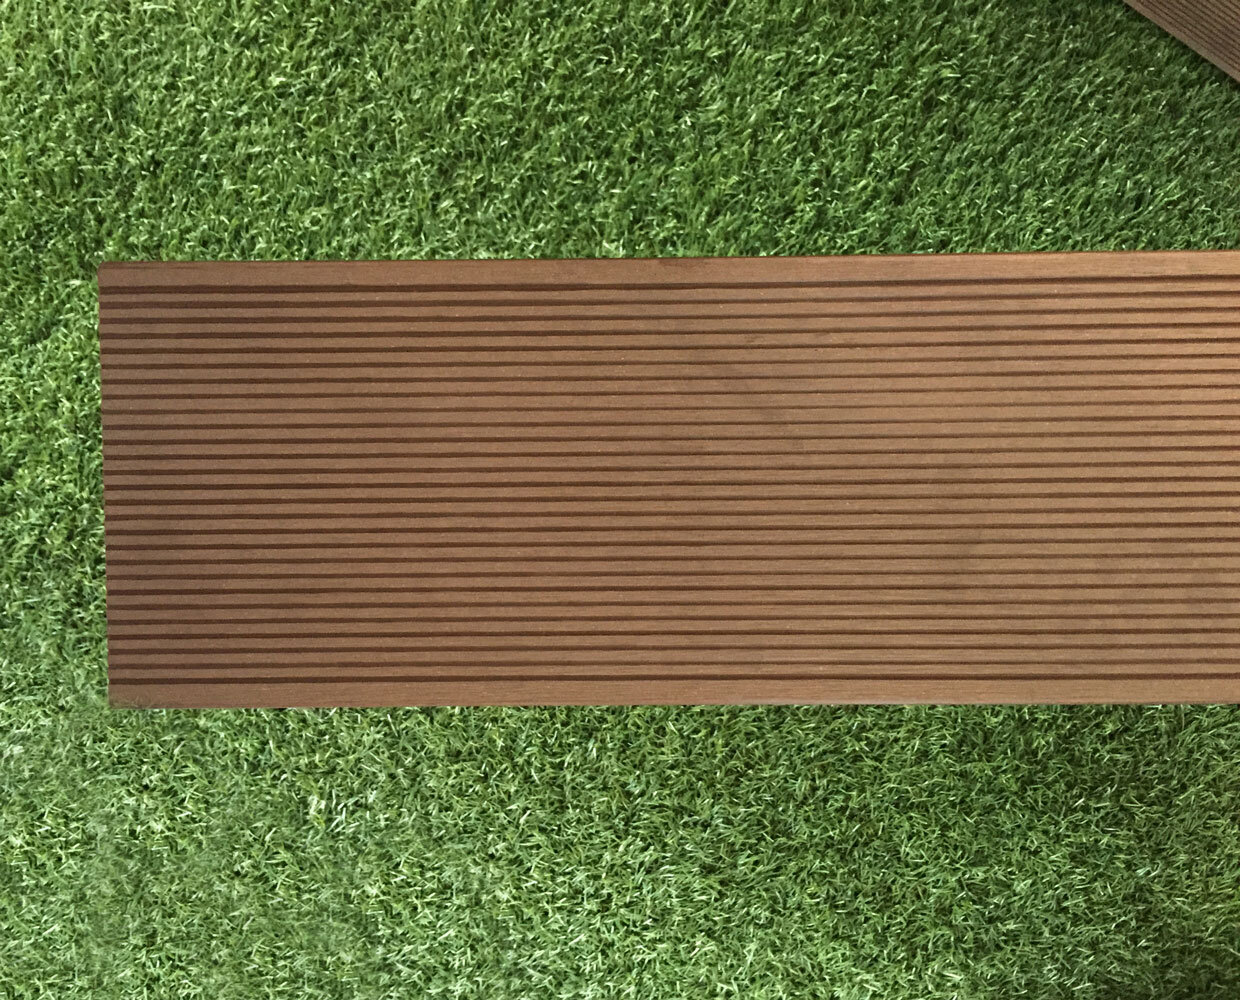 Bamboo wood flooring outdoor gurus floor for Bamboo flooring outdoor decking